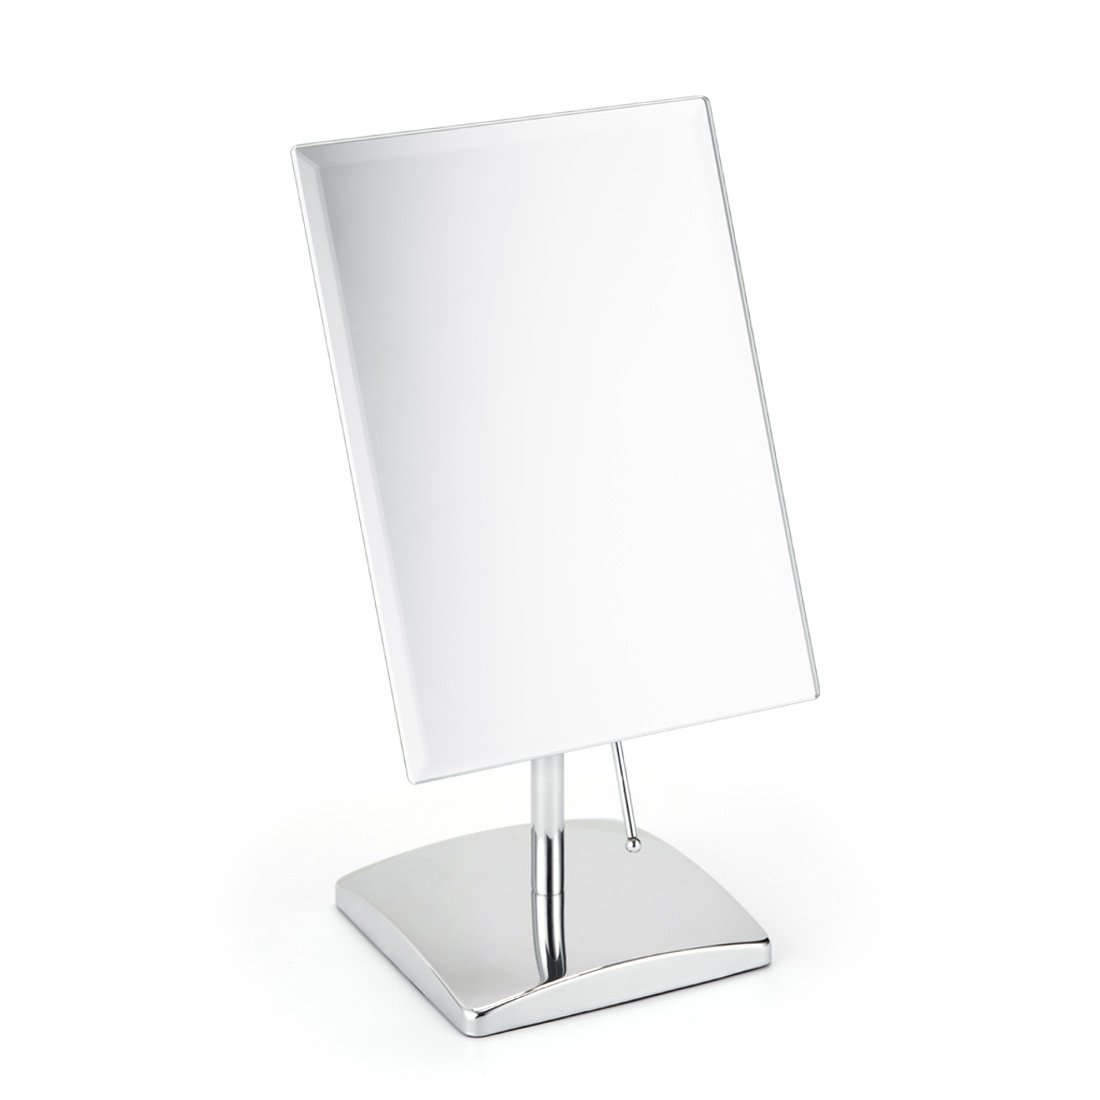 "FIRMLOC Makeup Mirror Rectangular Tabletop 9"" Adjustable Portable Polished Chrome Finished Vanity Modern Desktop Standing Mirror for Bedroom Bathroom Traveling"